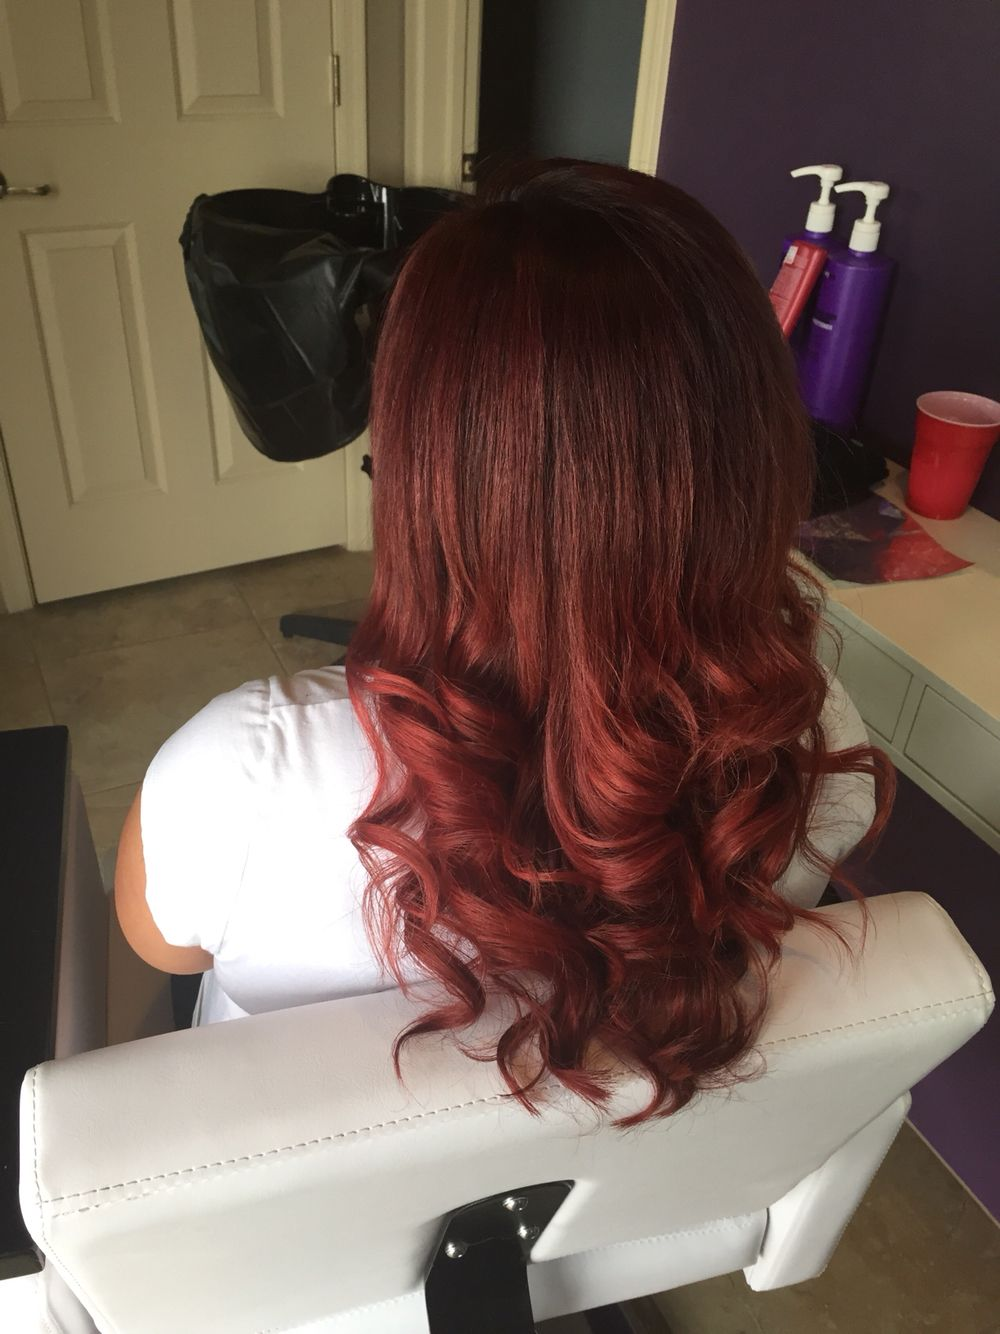 5rv for base and a Matrix Socolor Red on ends.